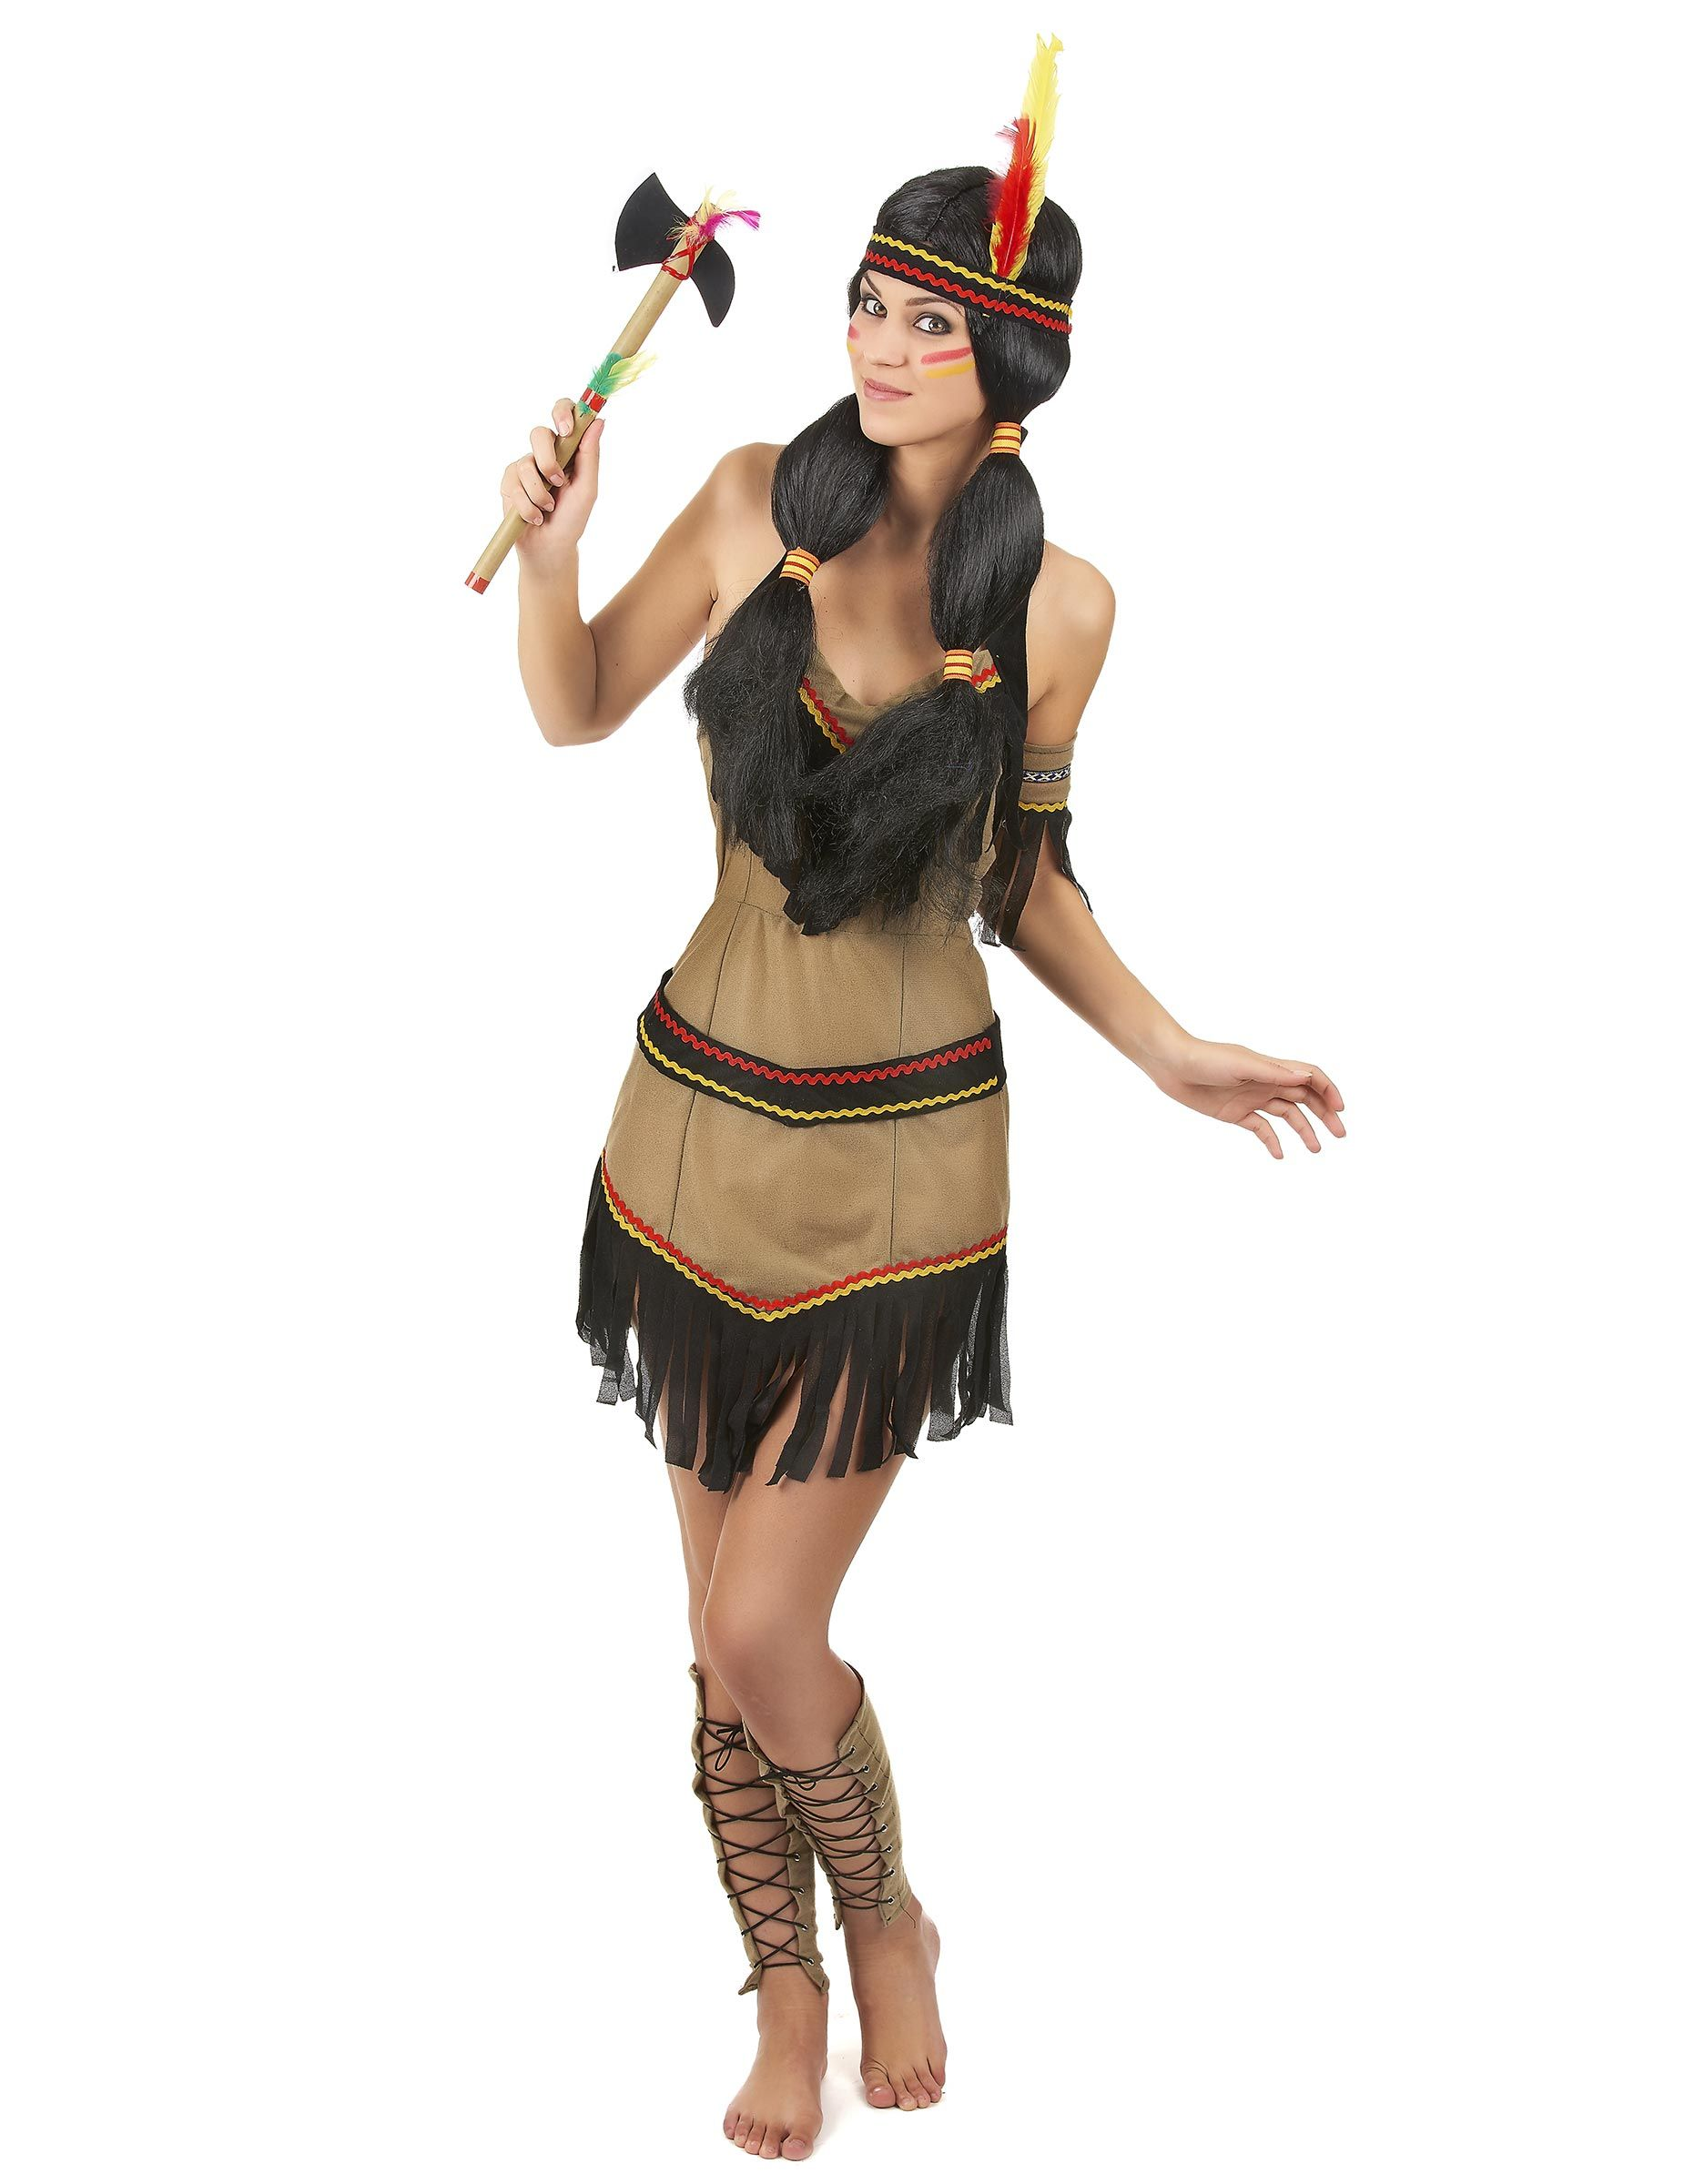 S S Femme Costume Costume S Indienne Femme Costume Indienne Costume Femme Indienne cT1lKFJ